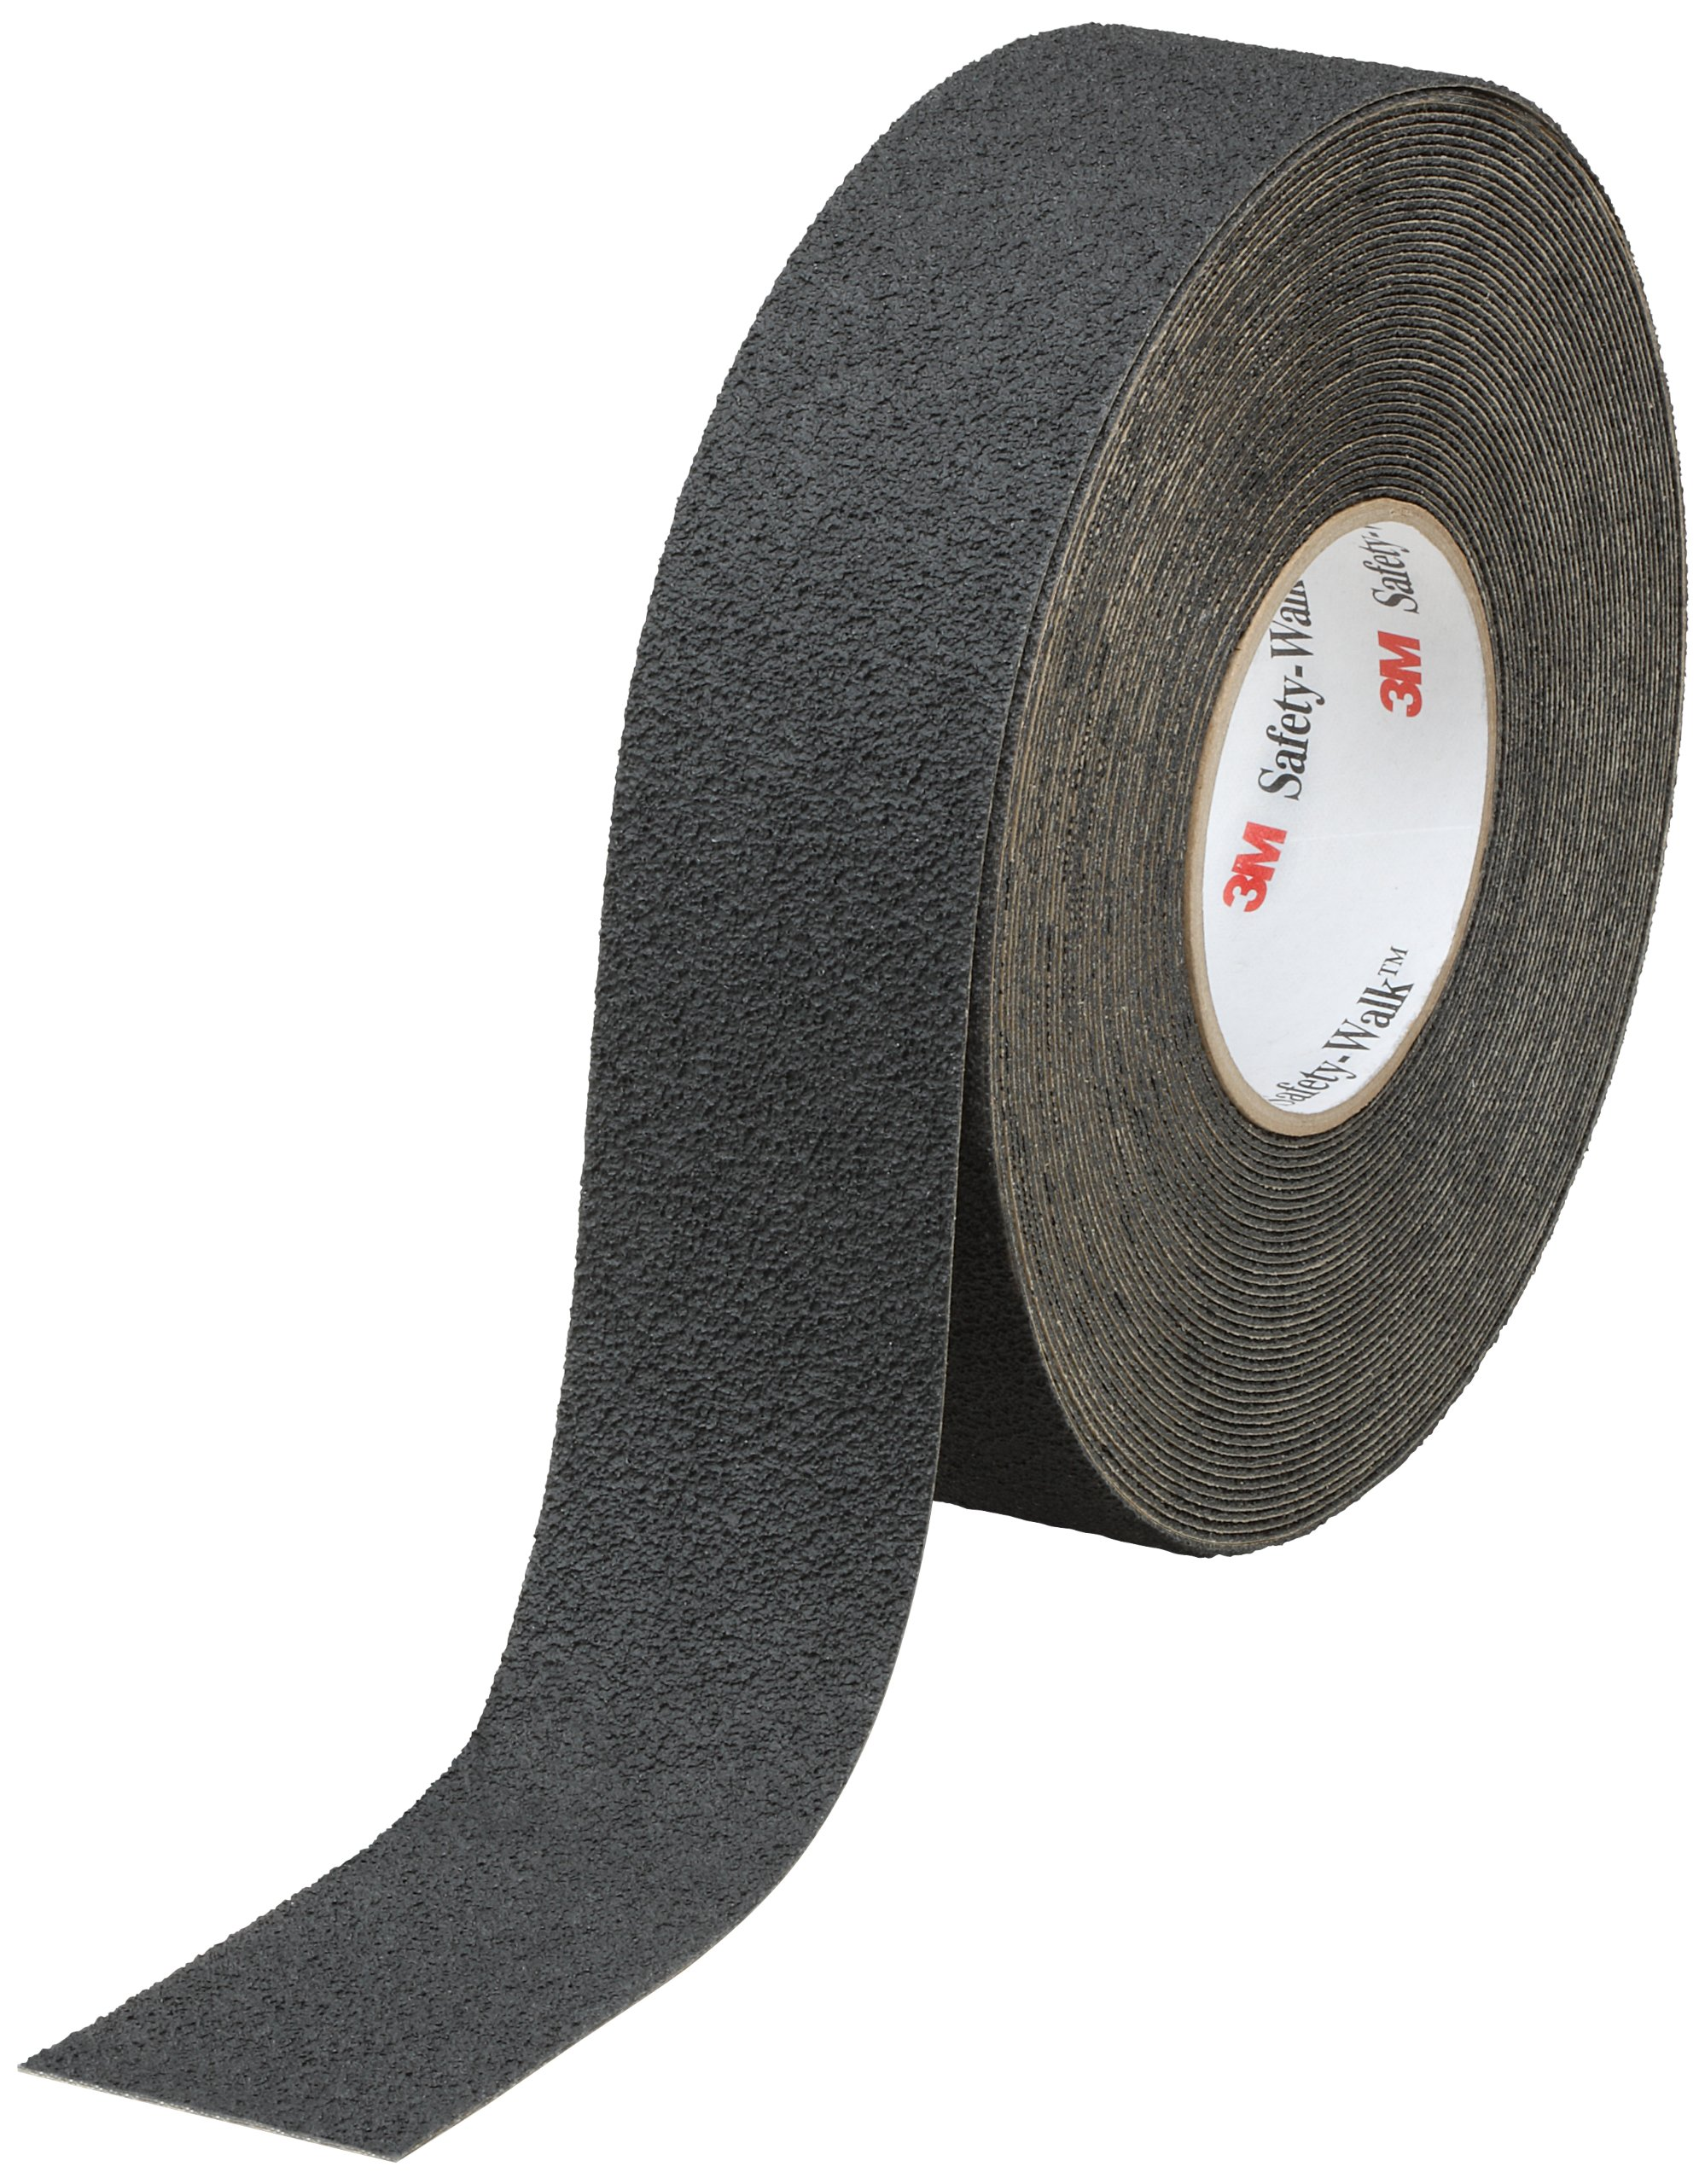 3M Safety-Walk Slip-Resistant Medium Resilient Tapes and Treads 310, Black, 2'' Width, 60' Length (Pack of 2 Rolls)